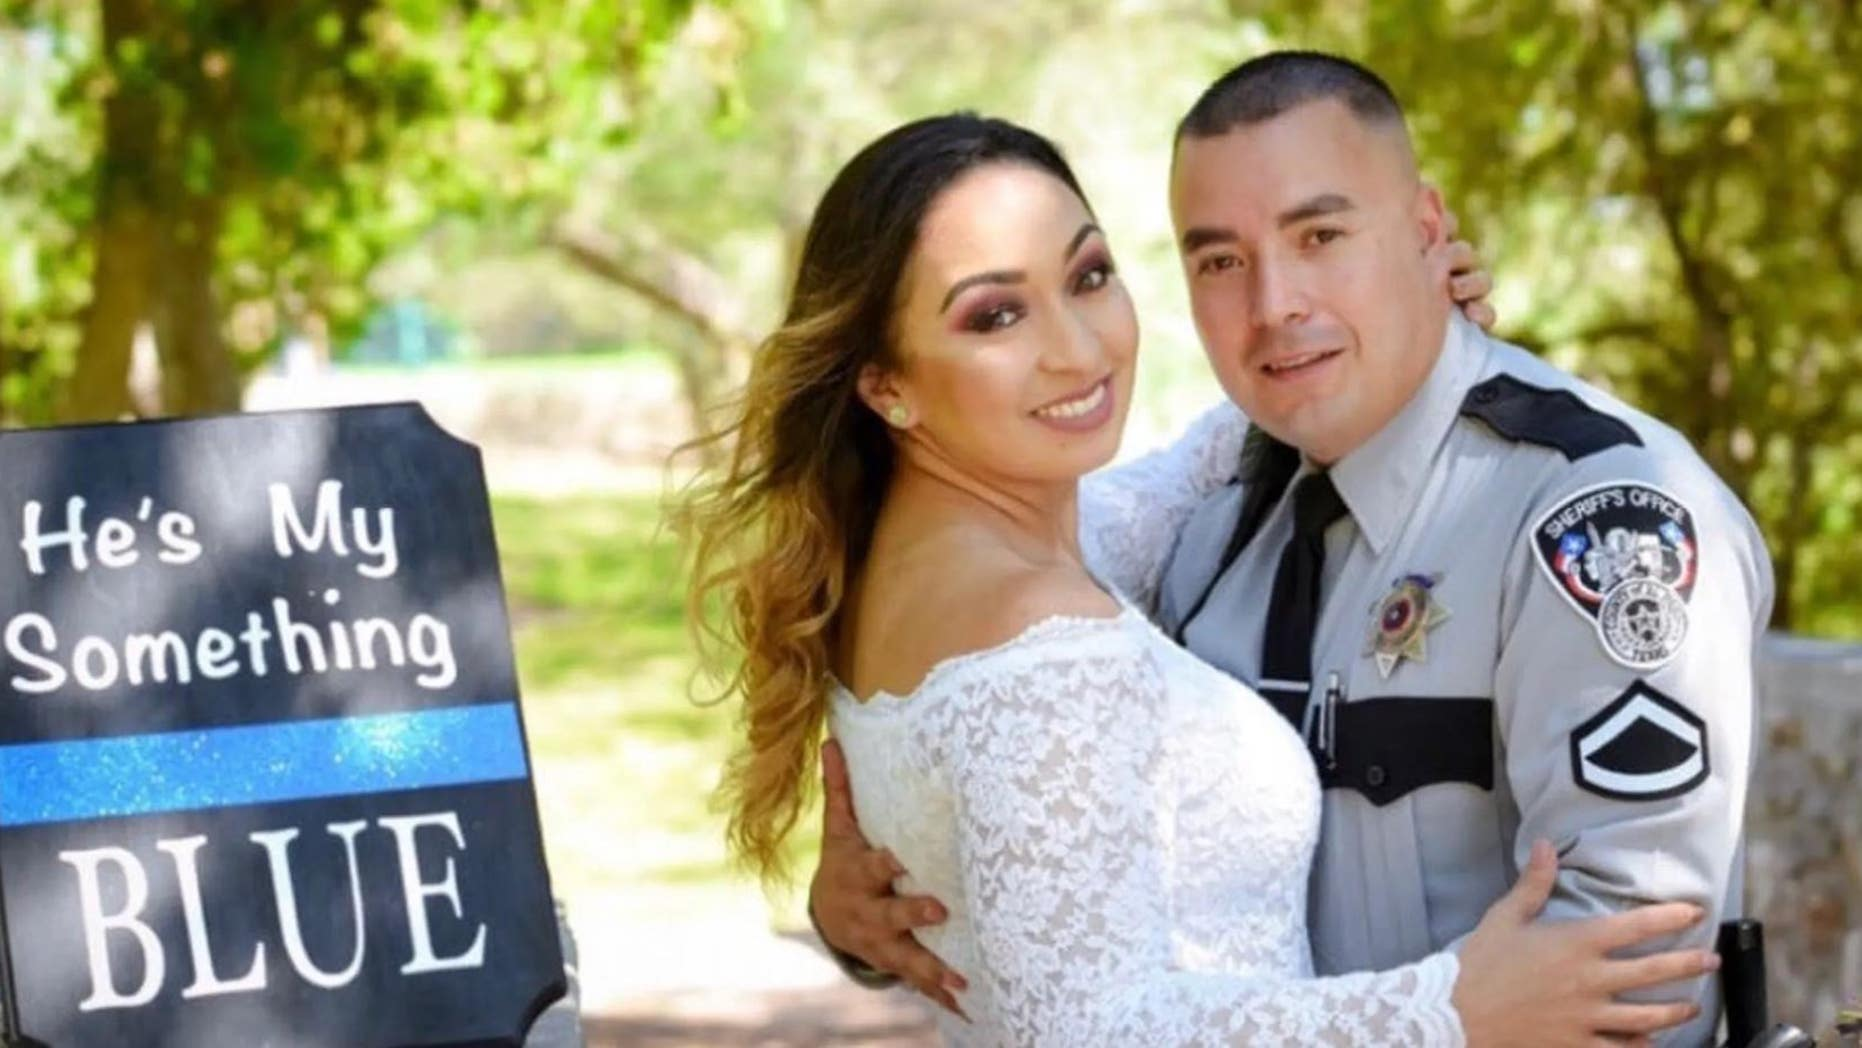 Peter Herrera, a West Texas sheriff's deputy, who was critically wounded Friday in a shooting during a traffic stop, has died, authorities said in a statement.